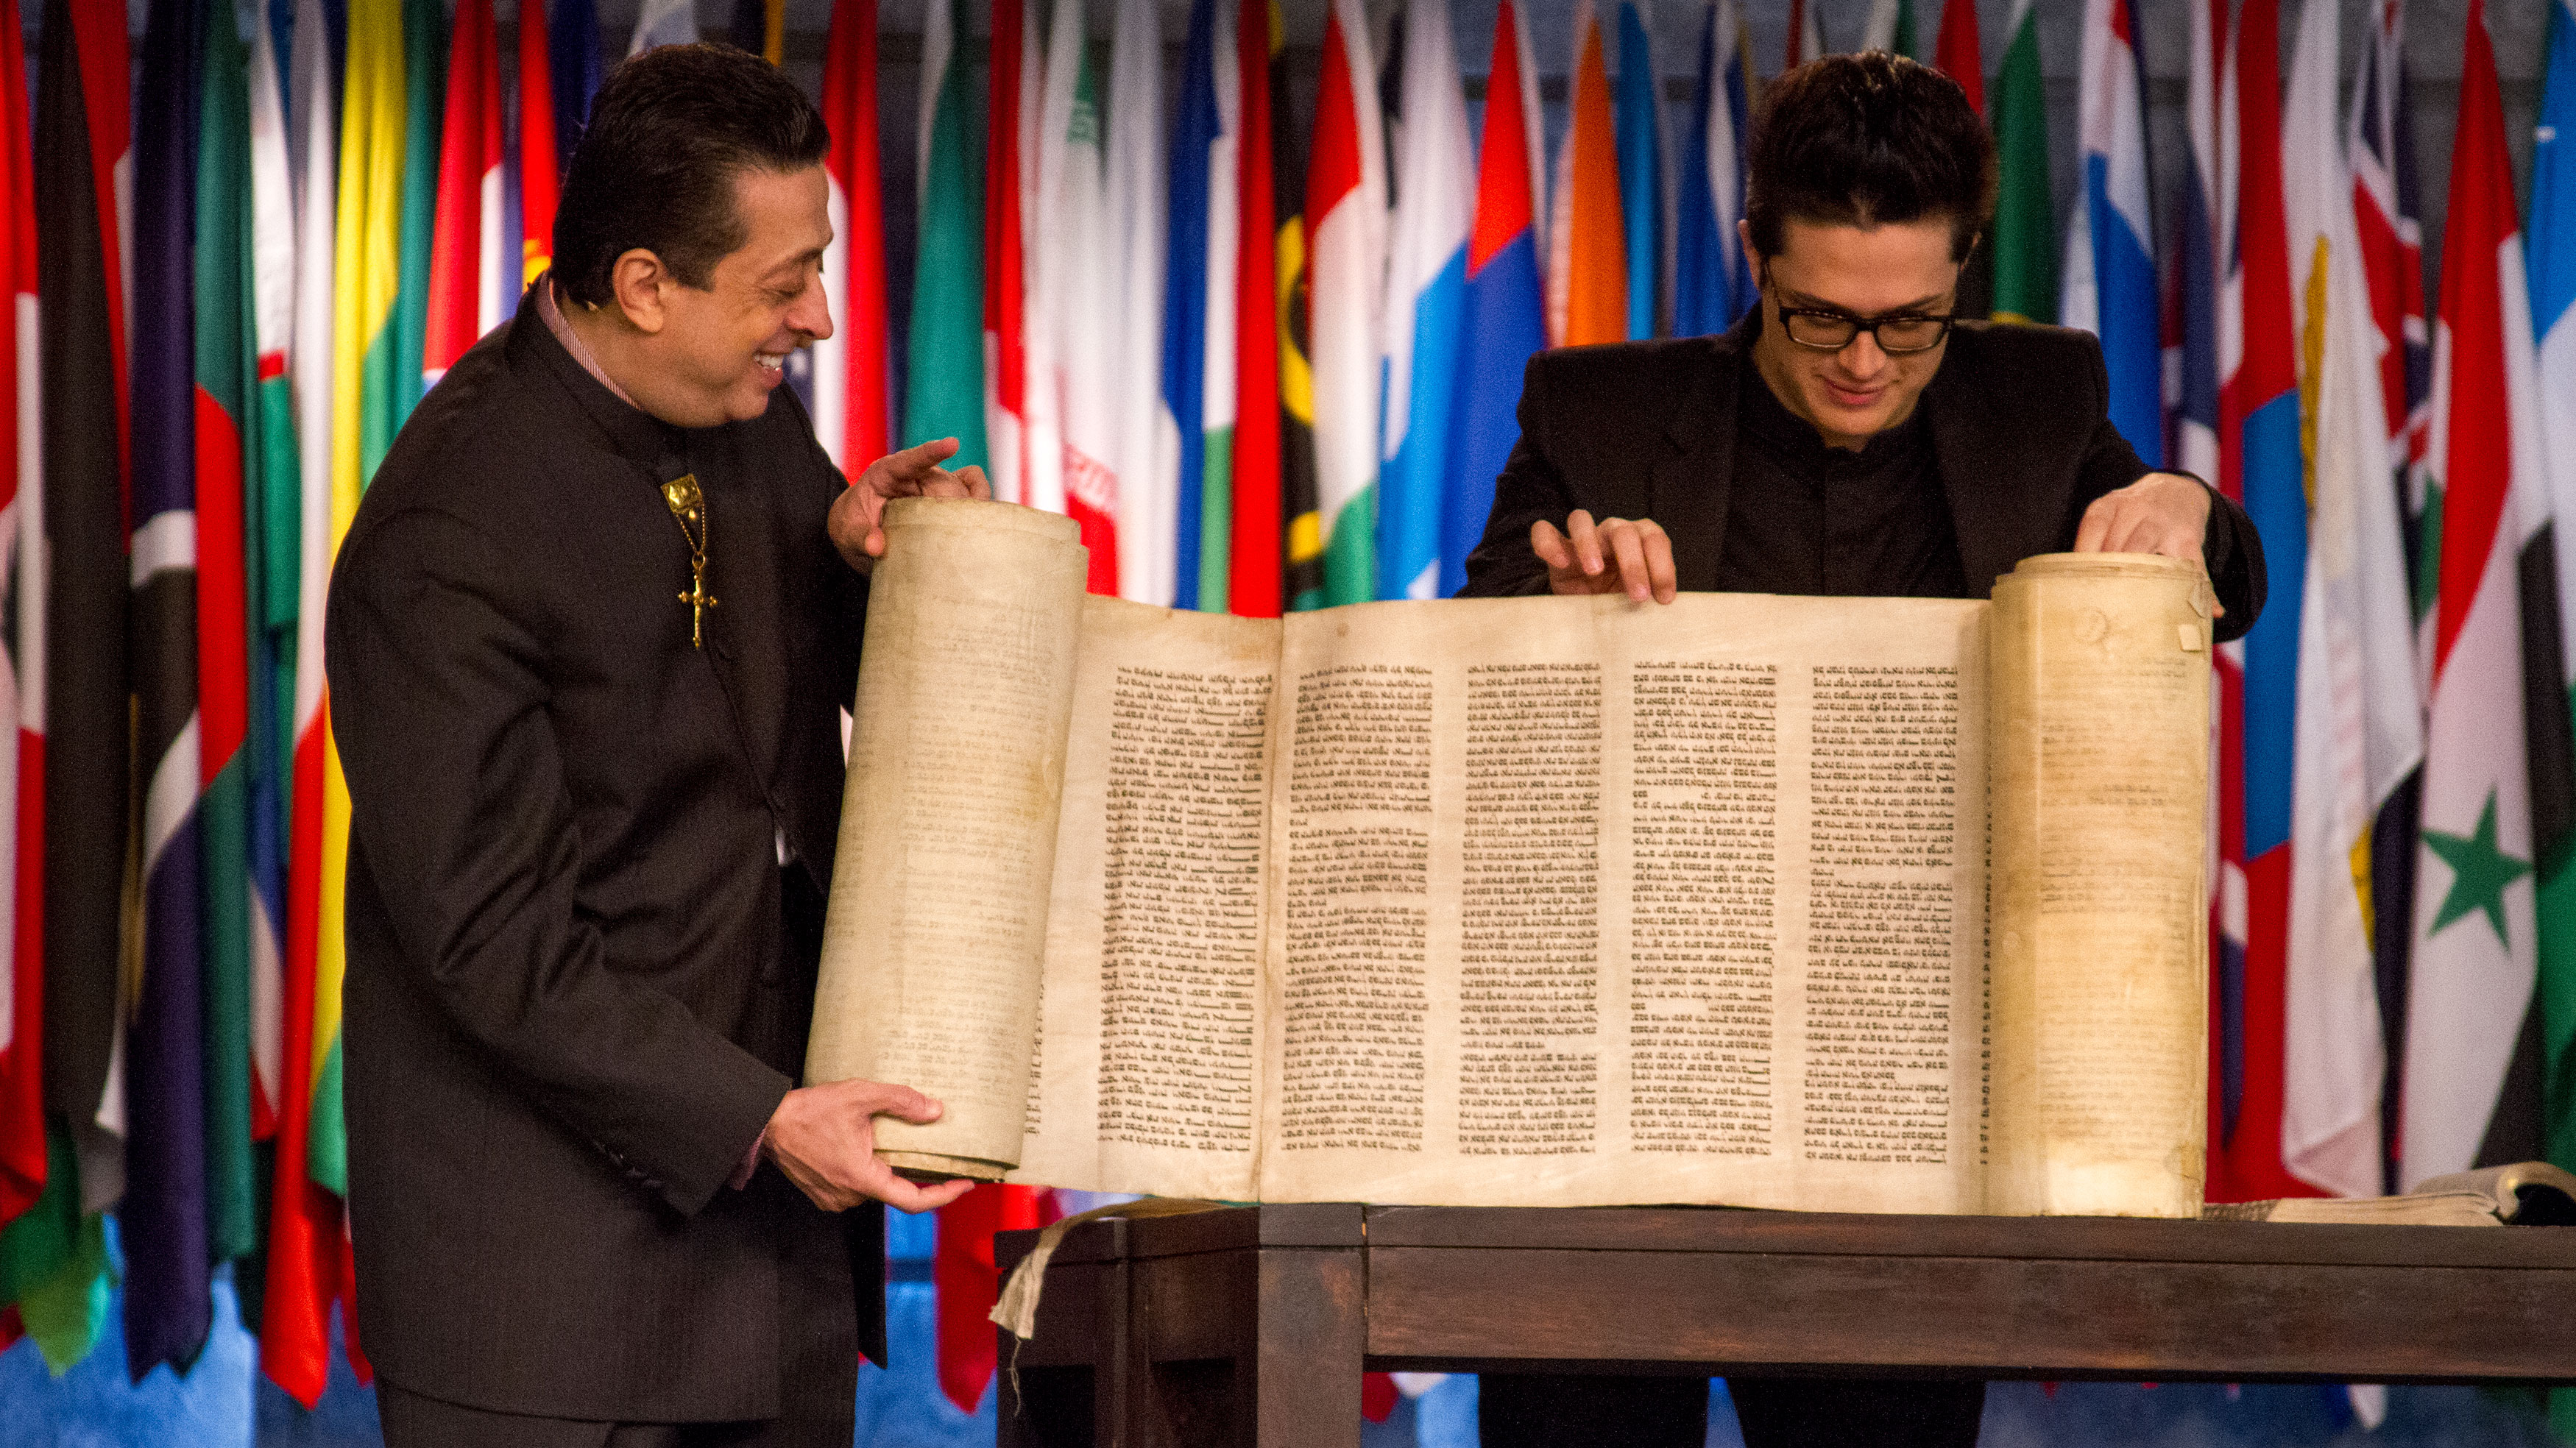 Apostle Doctor Christian Harfouche and Rev. John Harfouche showing a 250 year old, Holocaust-survivor Torah.